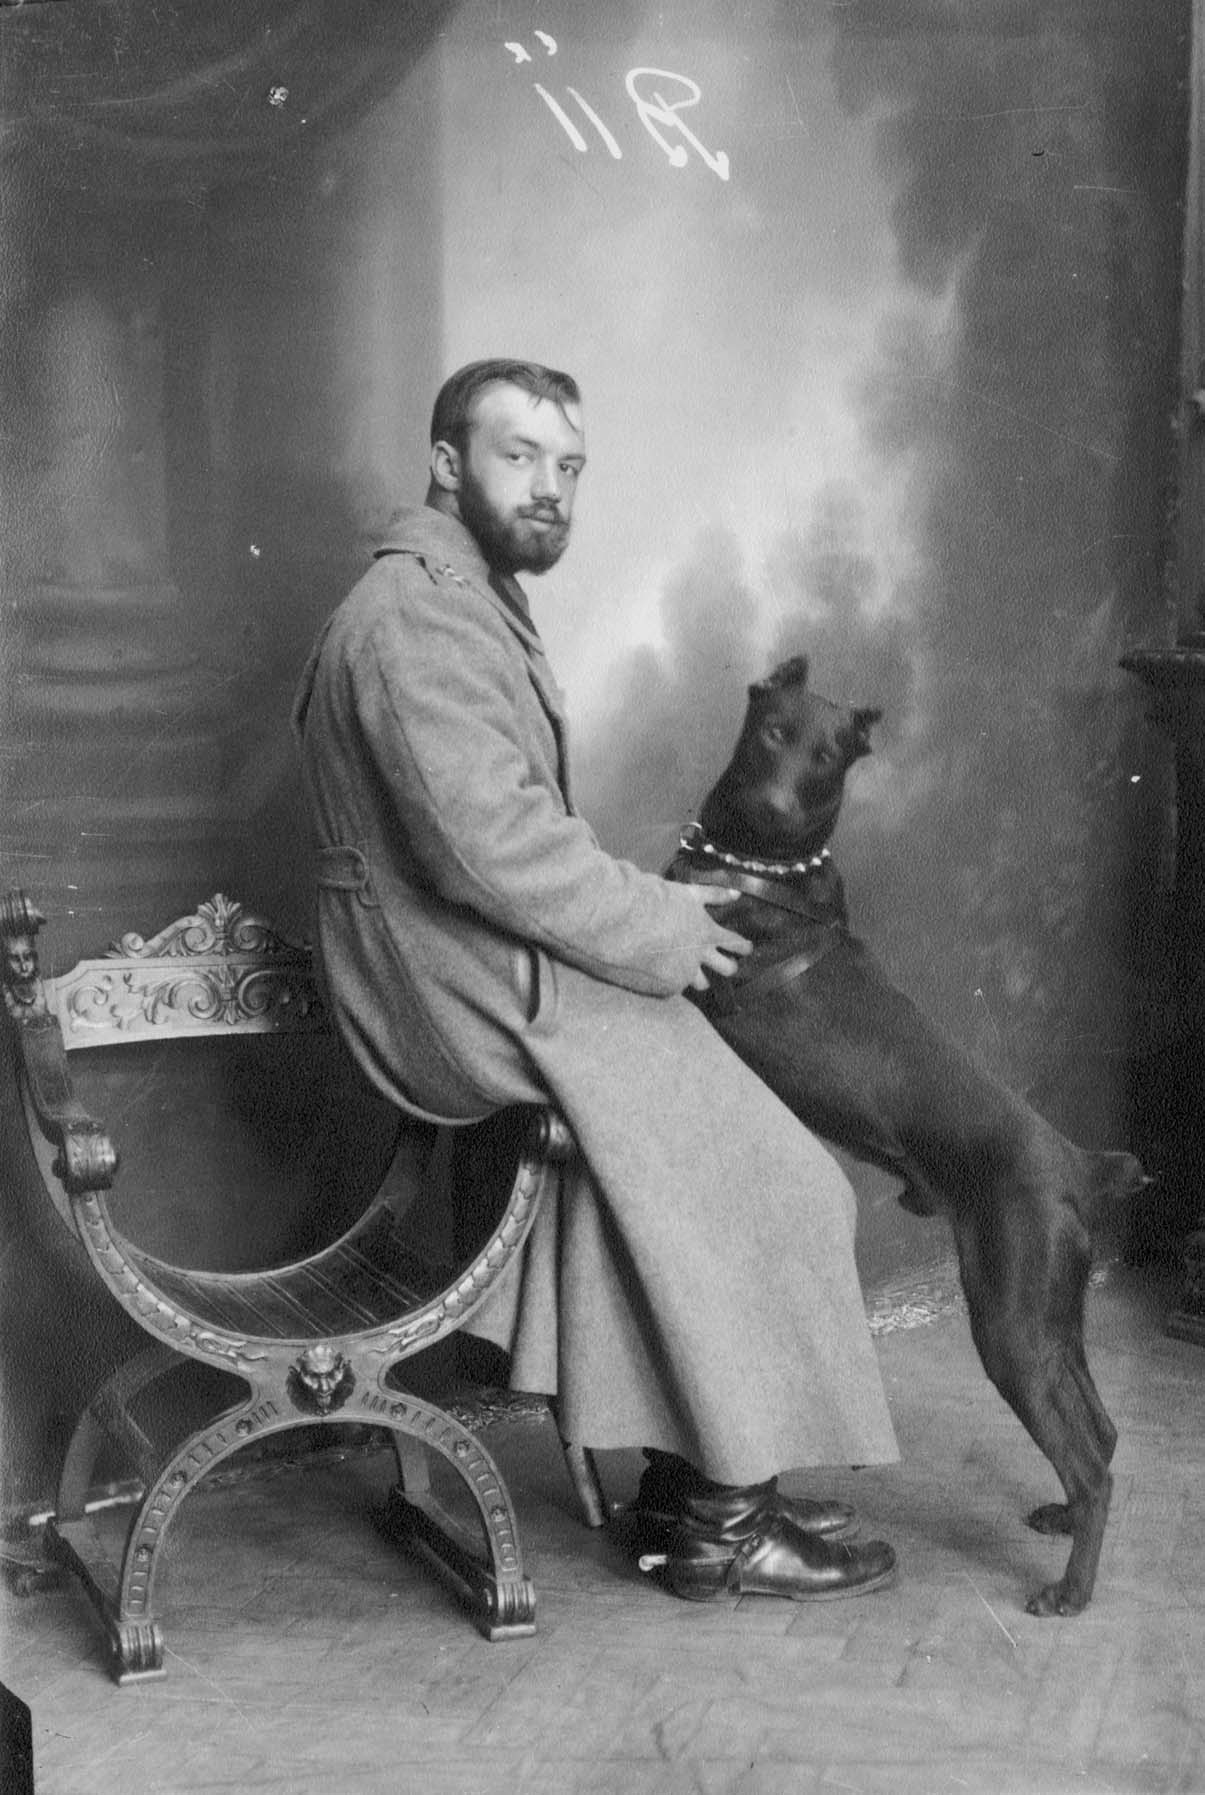 vintage photograph of doberman dog with man 1914 lwow